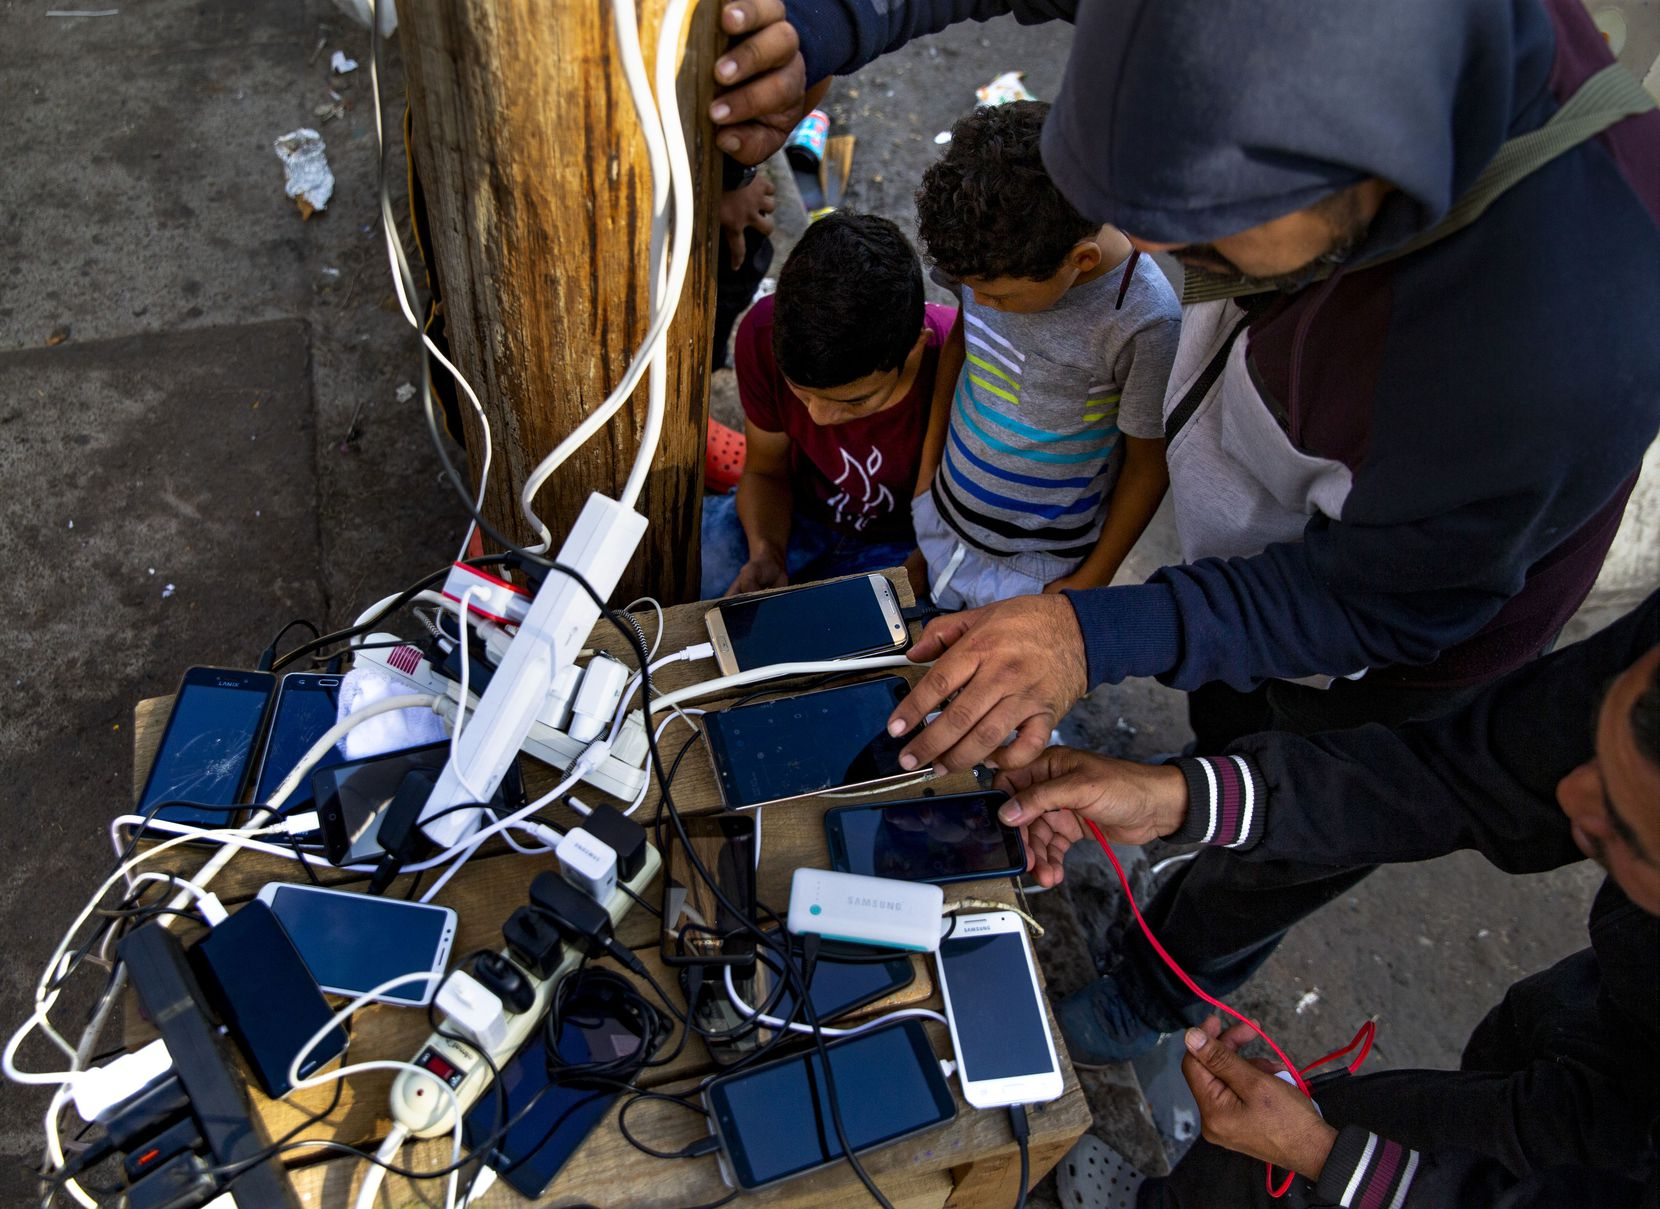 Asylum-seekers charge phones at the charging station at the temporary tent camps in Matamoros, Mexico, on Dec. 15, 2019. Residents rely on a single outlet hanging from a utility pole to charge their phones to remain in contact with relatives and lawyers.